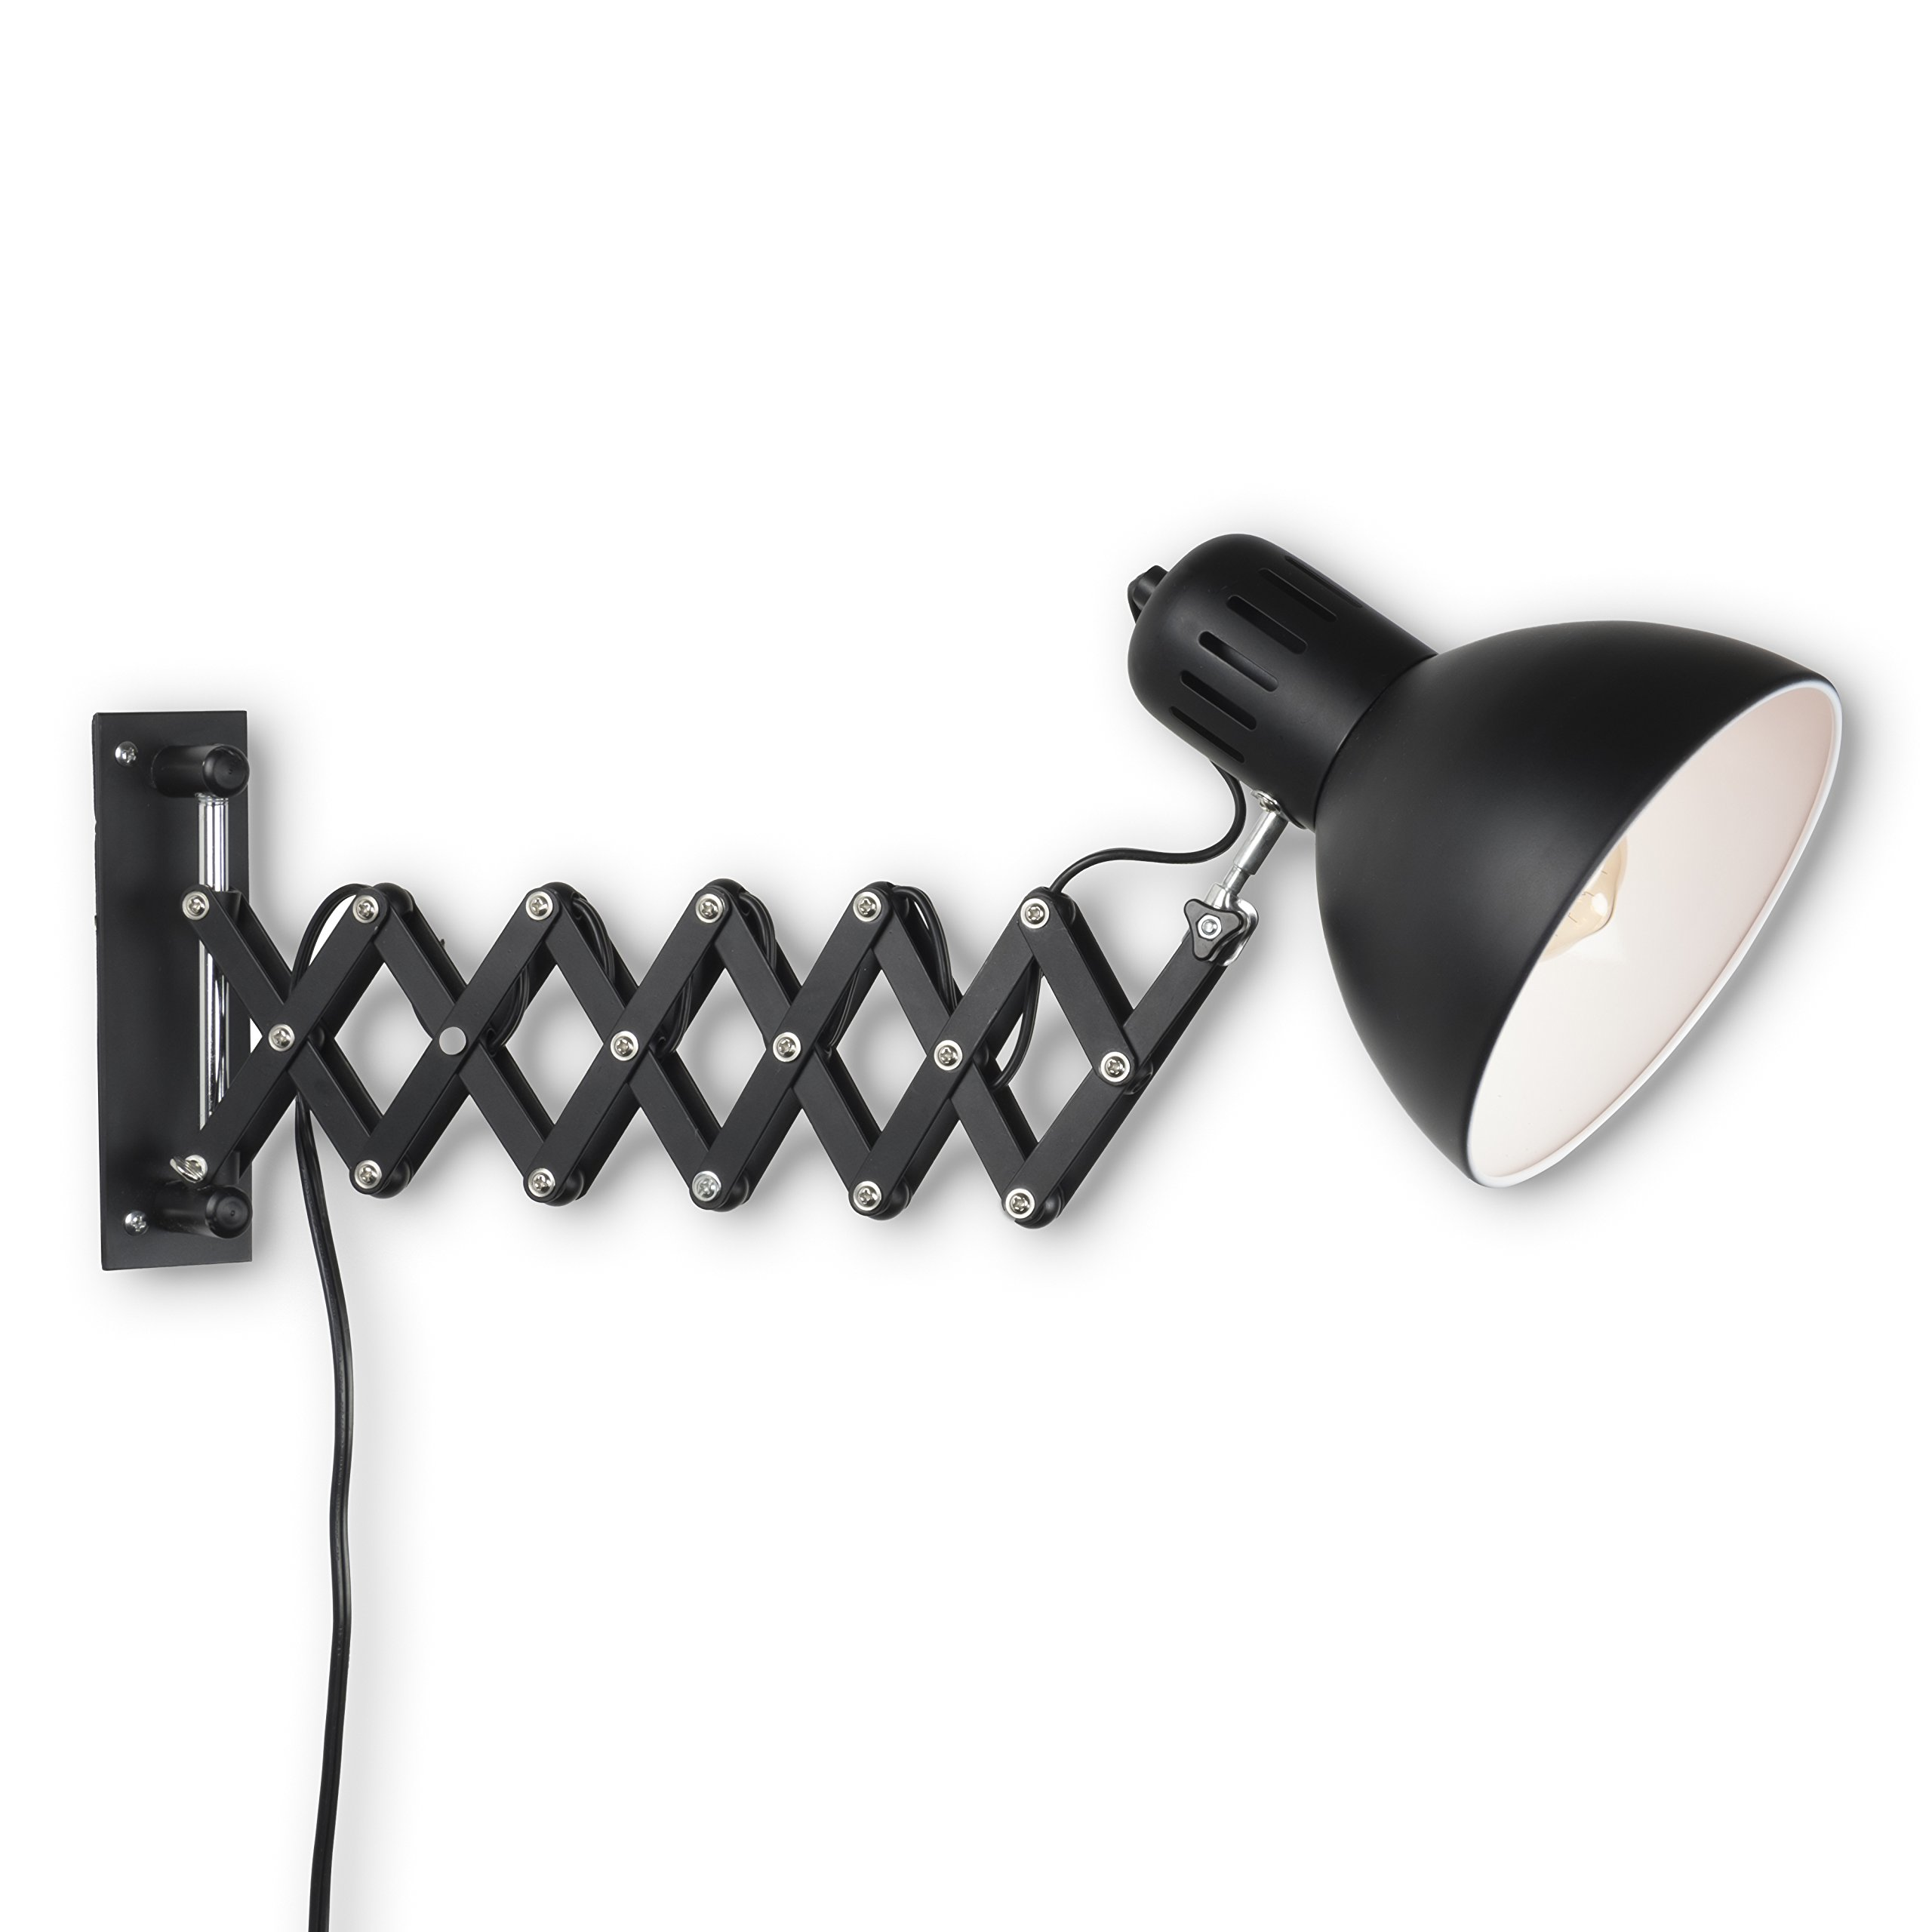 Rustic State Industrial Look Adjustable Wall Reading Task Multi-Purpose Lamp Swing Arm Scissor Extendable Accordion Type with LED Edison Bulb (Black)